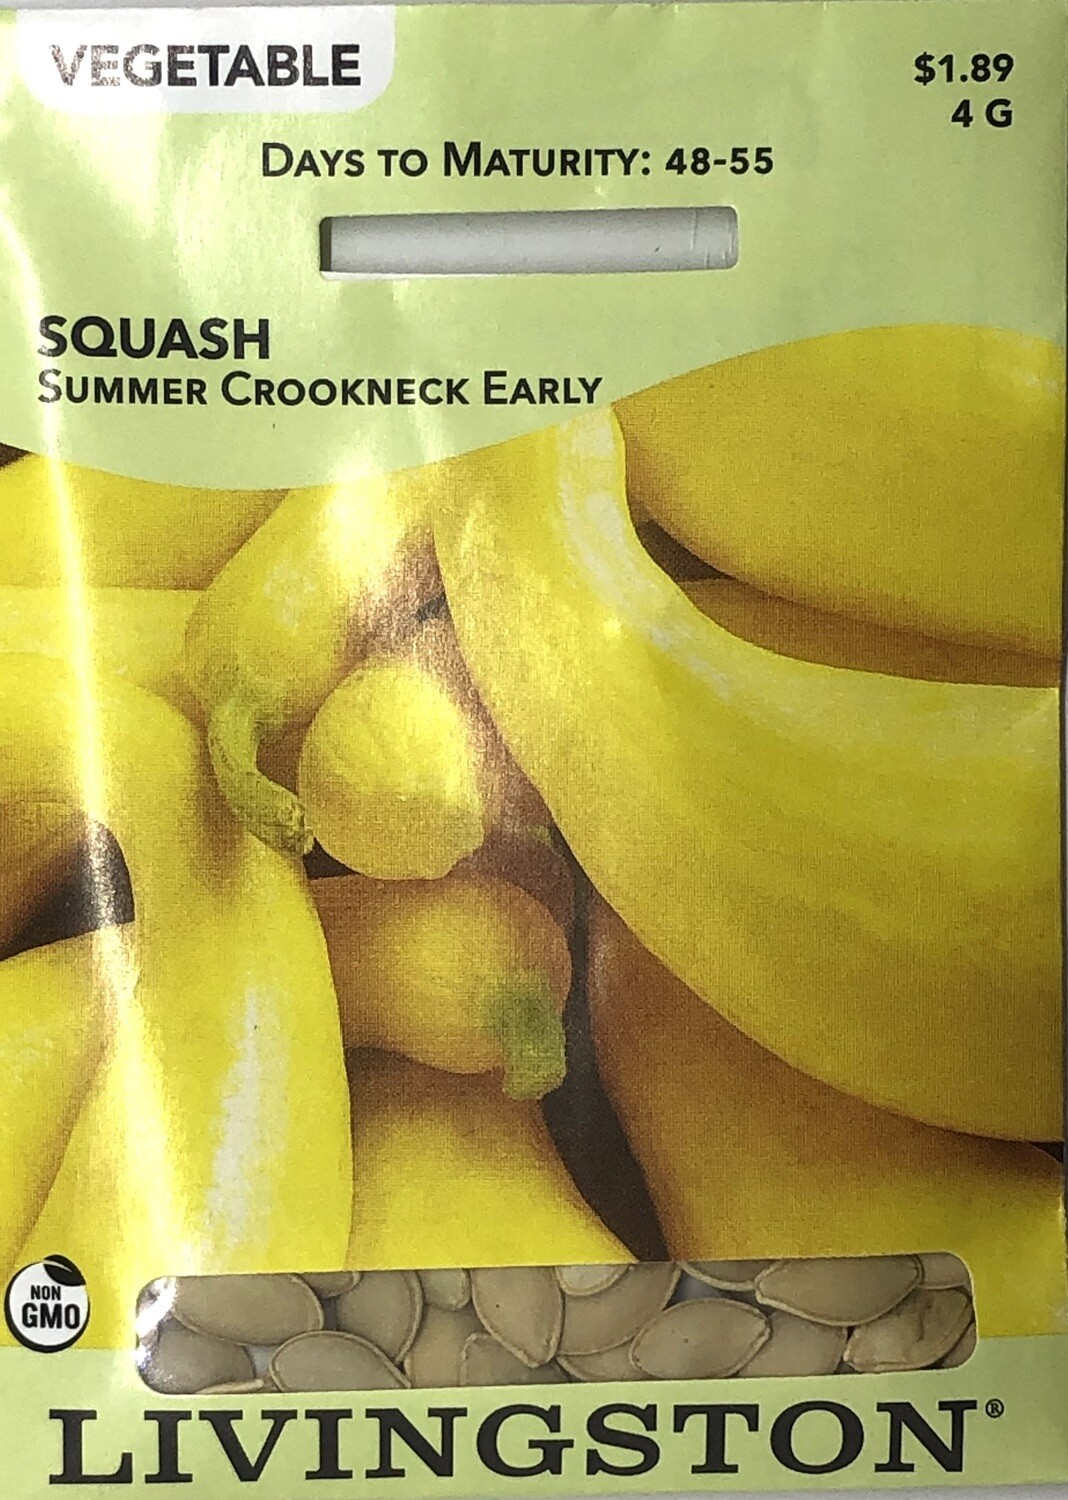 SQUASH - SUMMER CROOKNECK EARLY